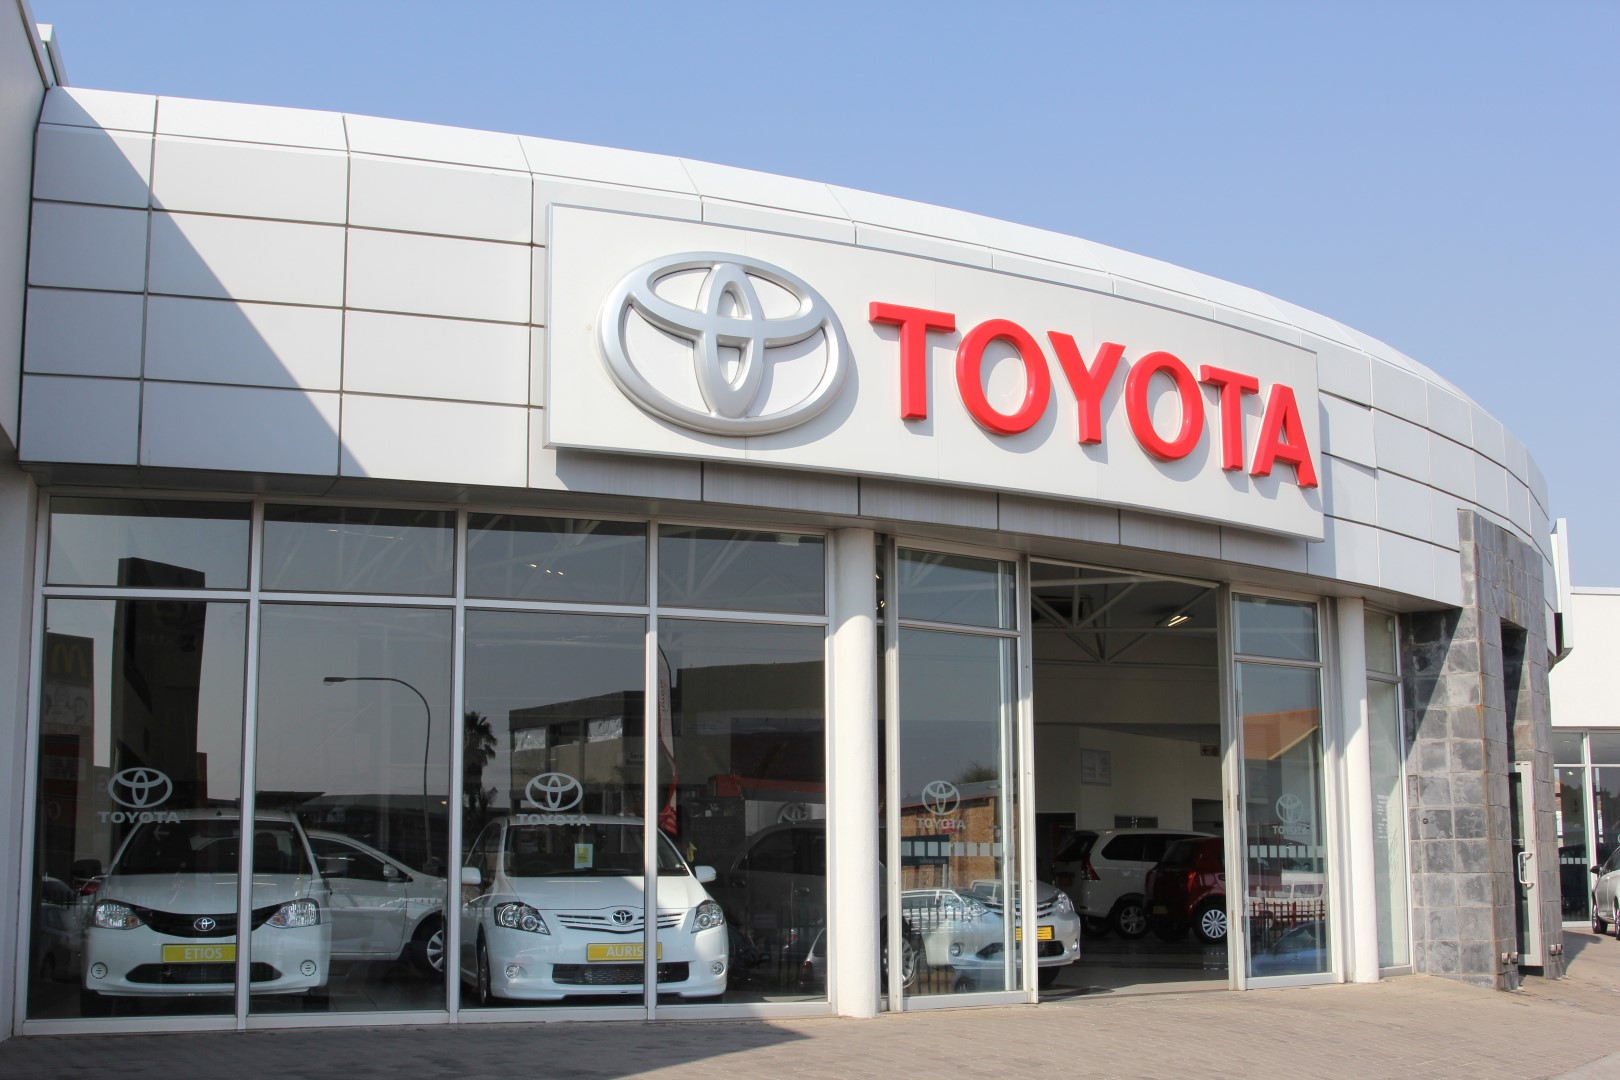 Toyota CEO to head up European unit